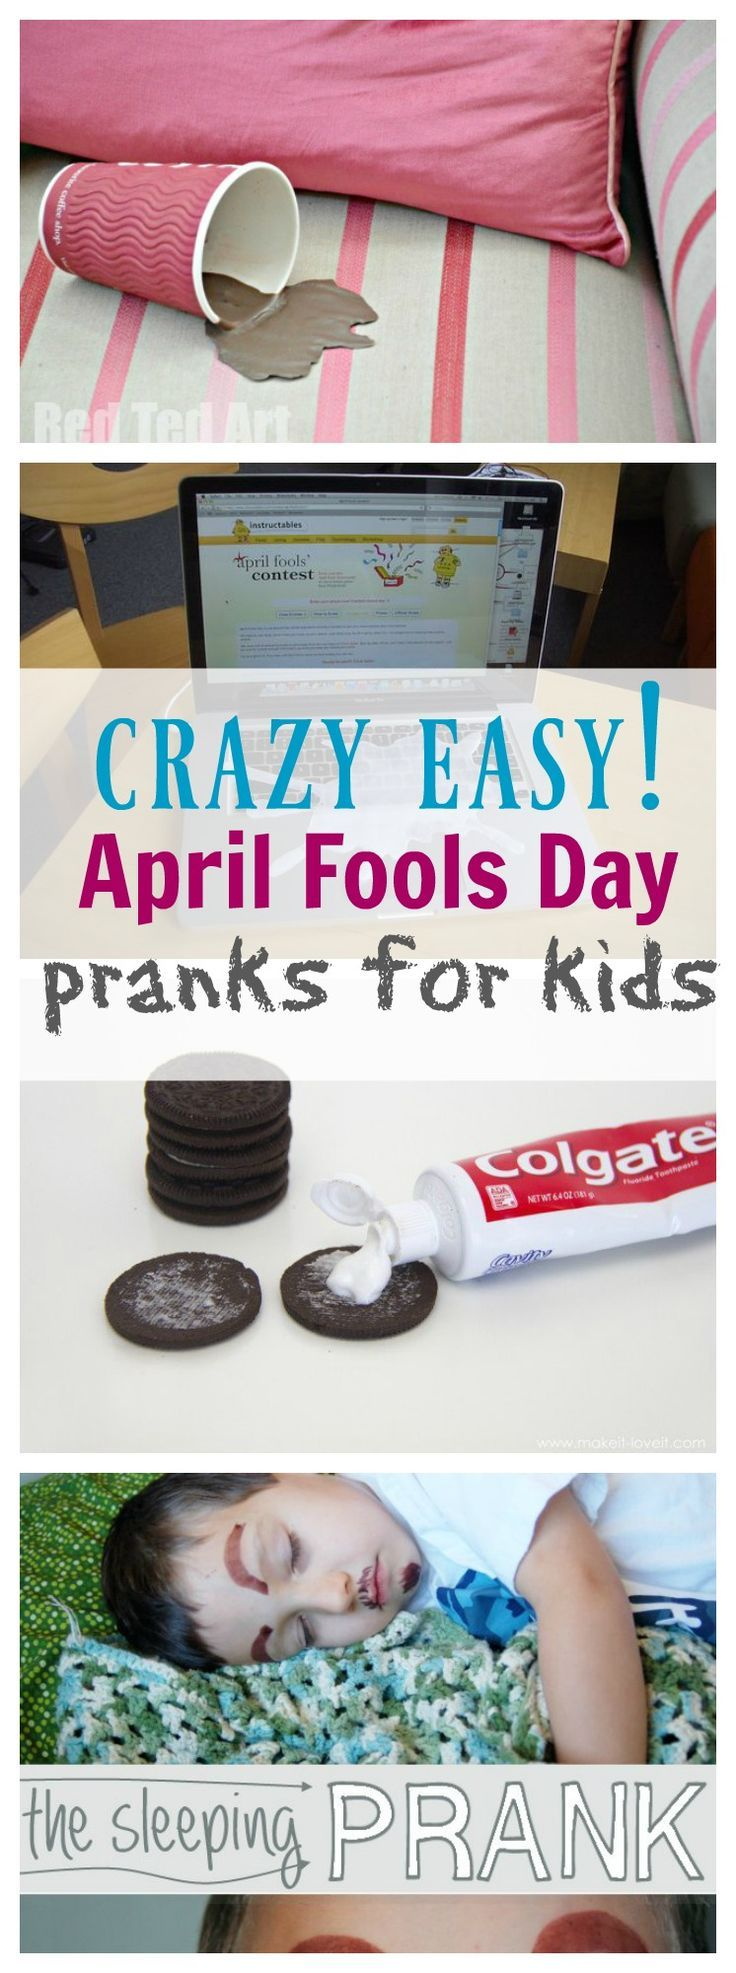 April fools day jokes for kids